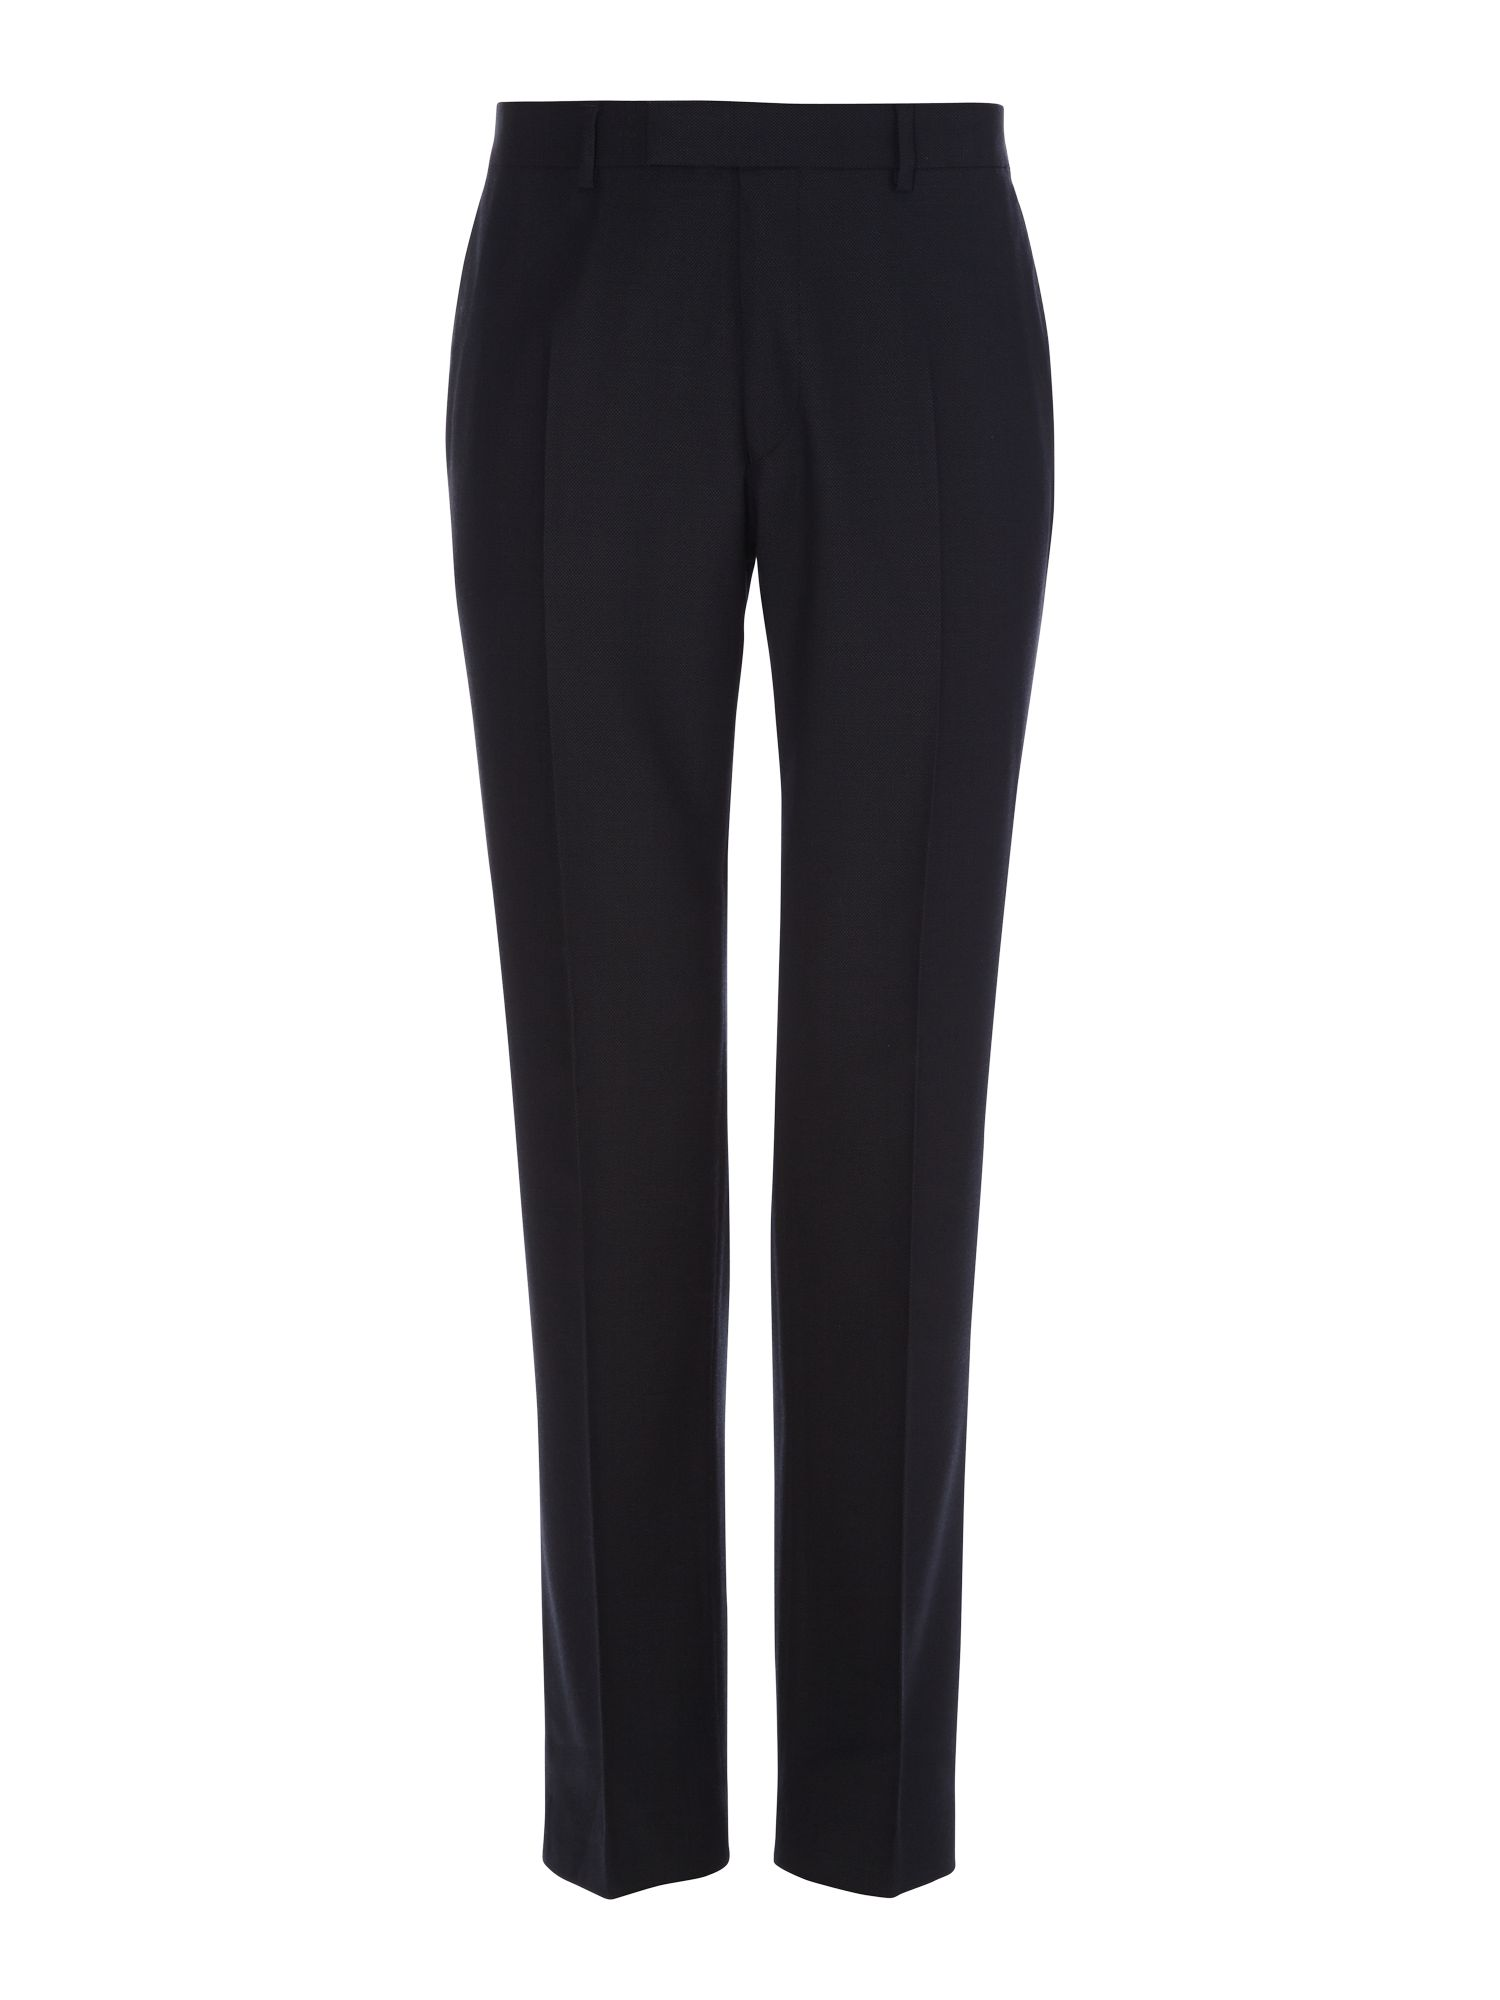 Birdseye formal suit trouser